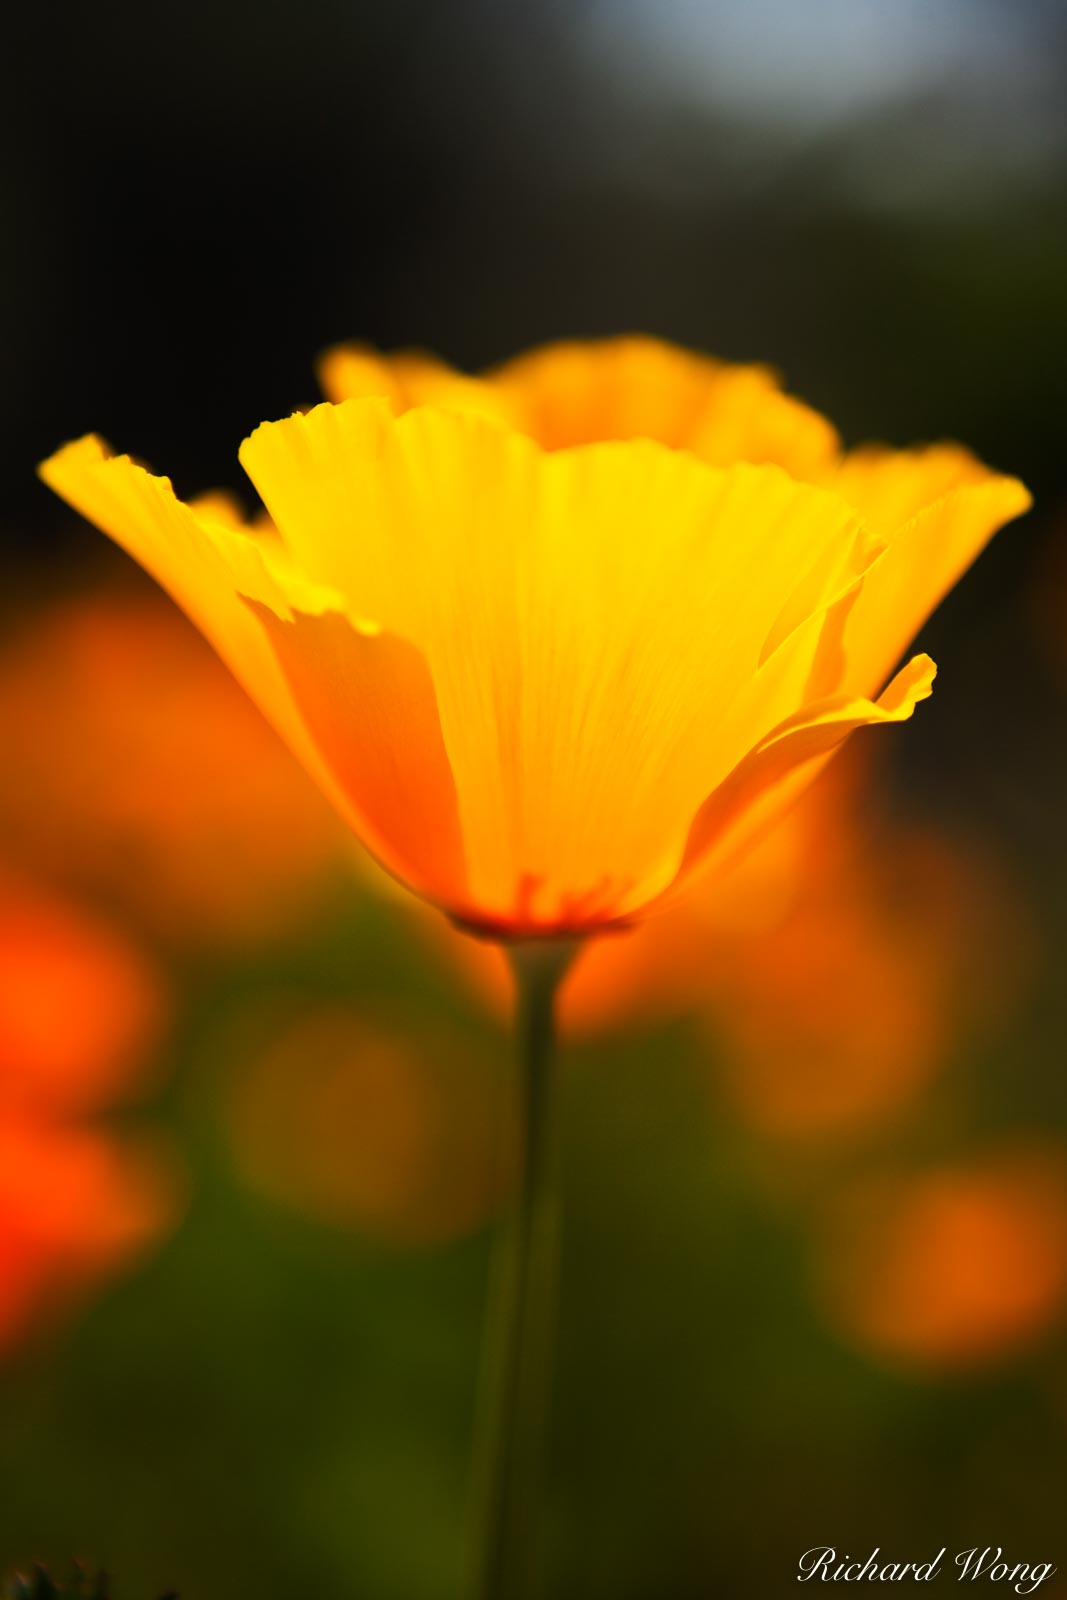 California, Central Coast, Golden Poppies, afternoon, bloom, blooming, blooms, blossoms, close up, color image, colour image, ecology, eschscholzia californica, flora, flower, flowering, flowers, macr, photo